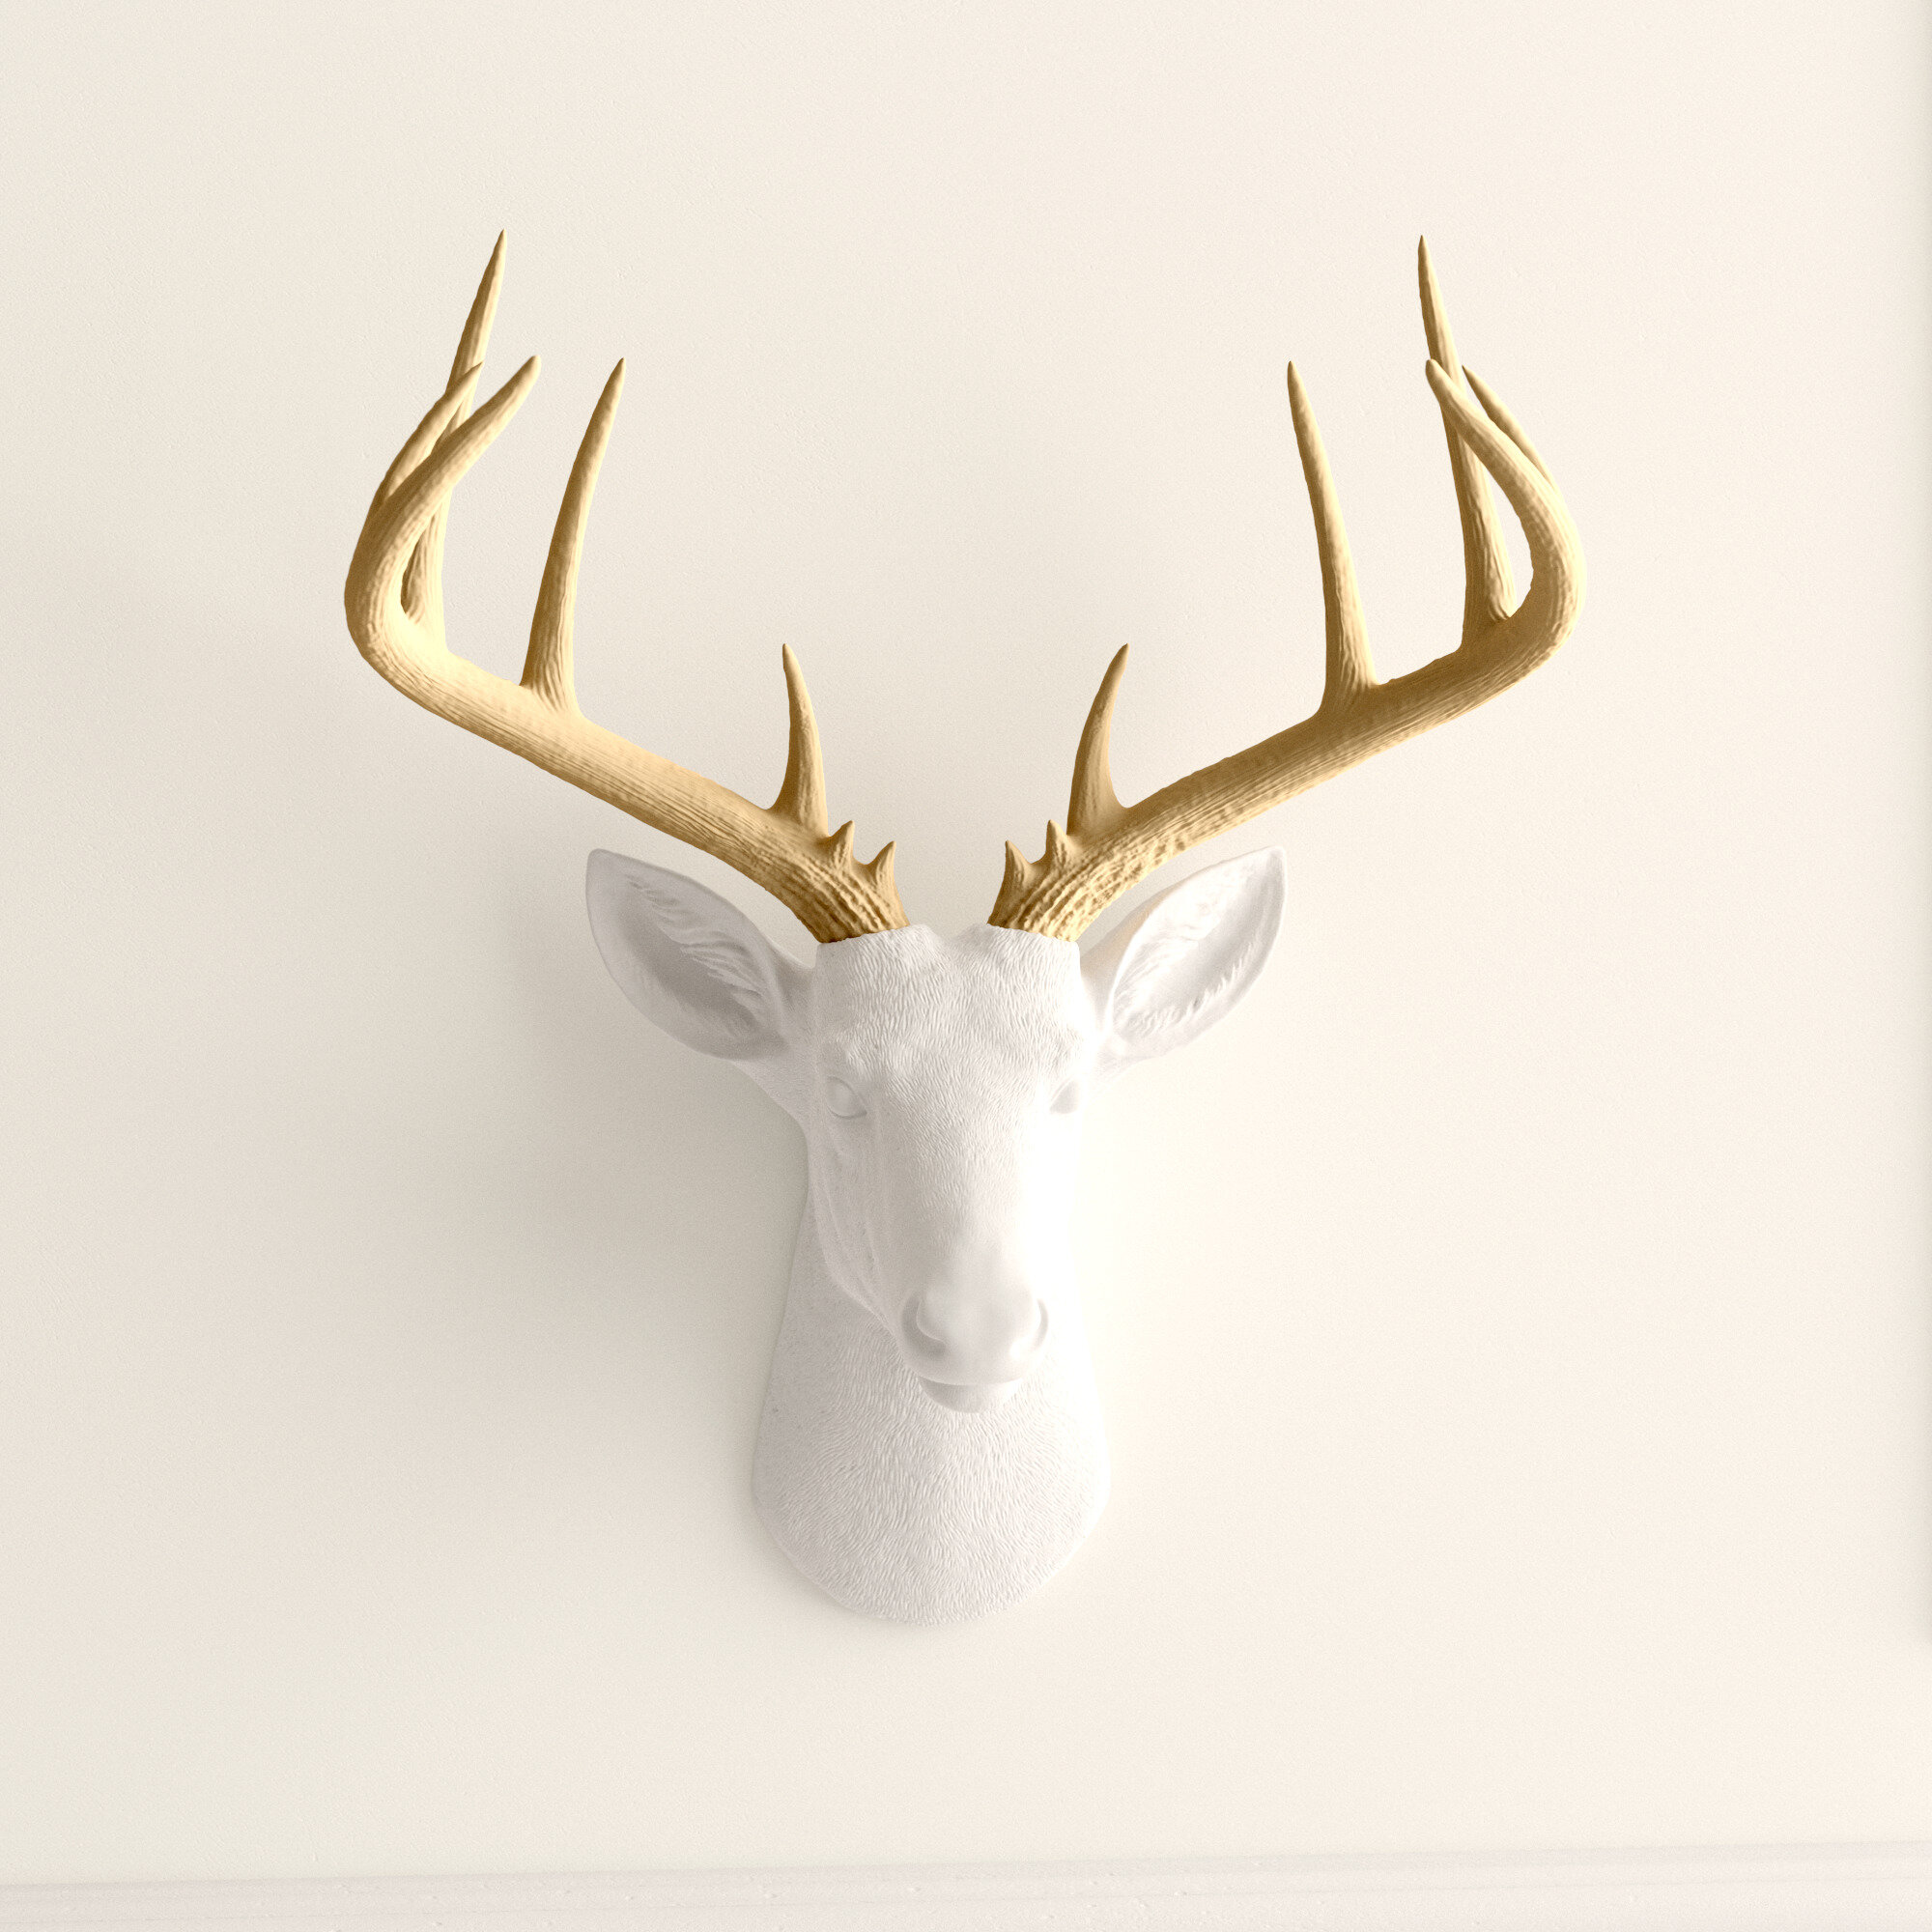 Walplus Contemporary Taxidermy Deer Head Wall Art Decorations Home or gifts idea